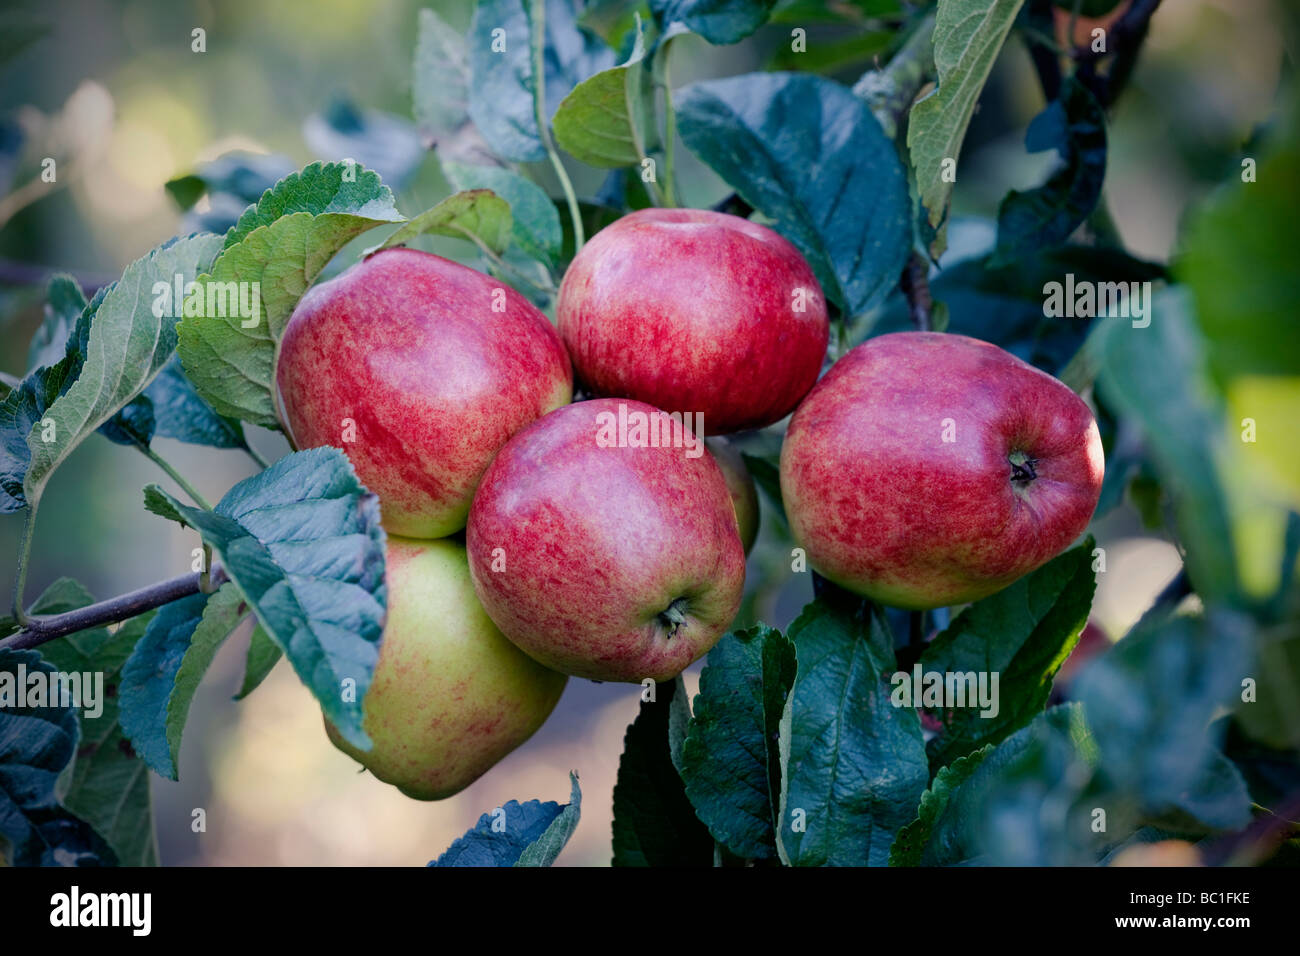 Dessert apples 'Norfolk Royal'  in an English orchard - Stock Image